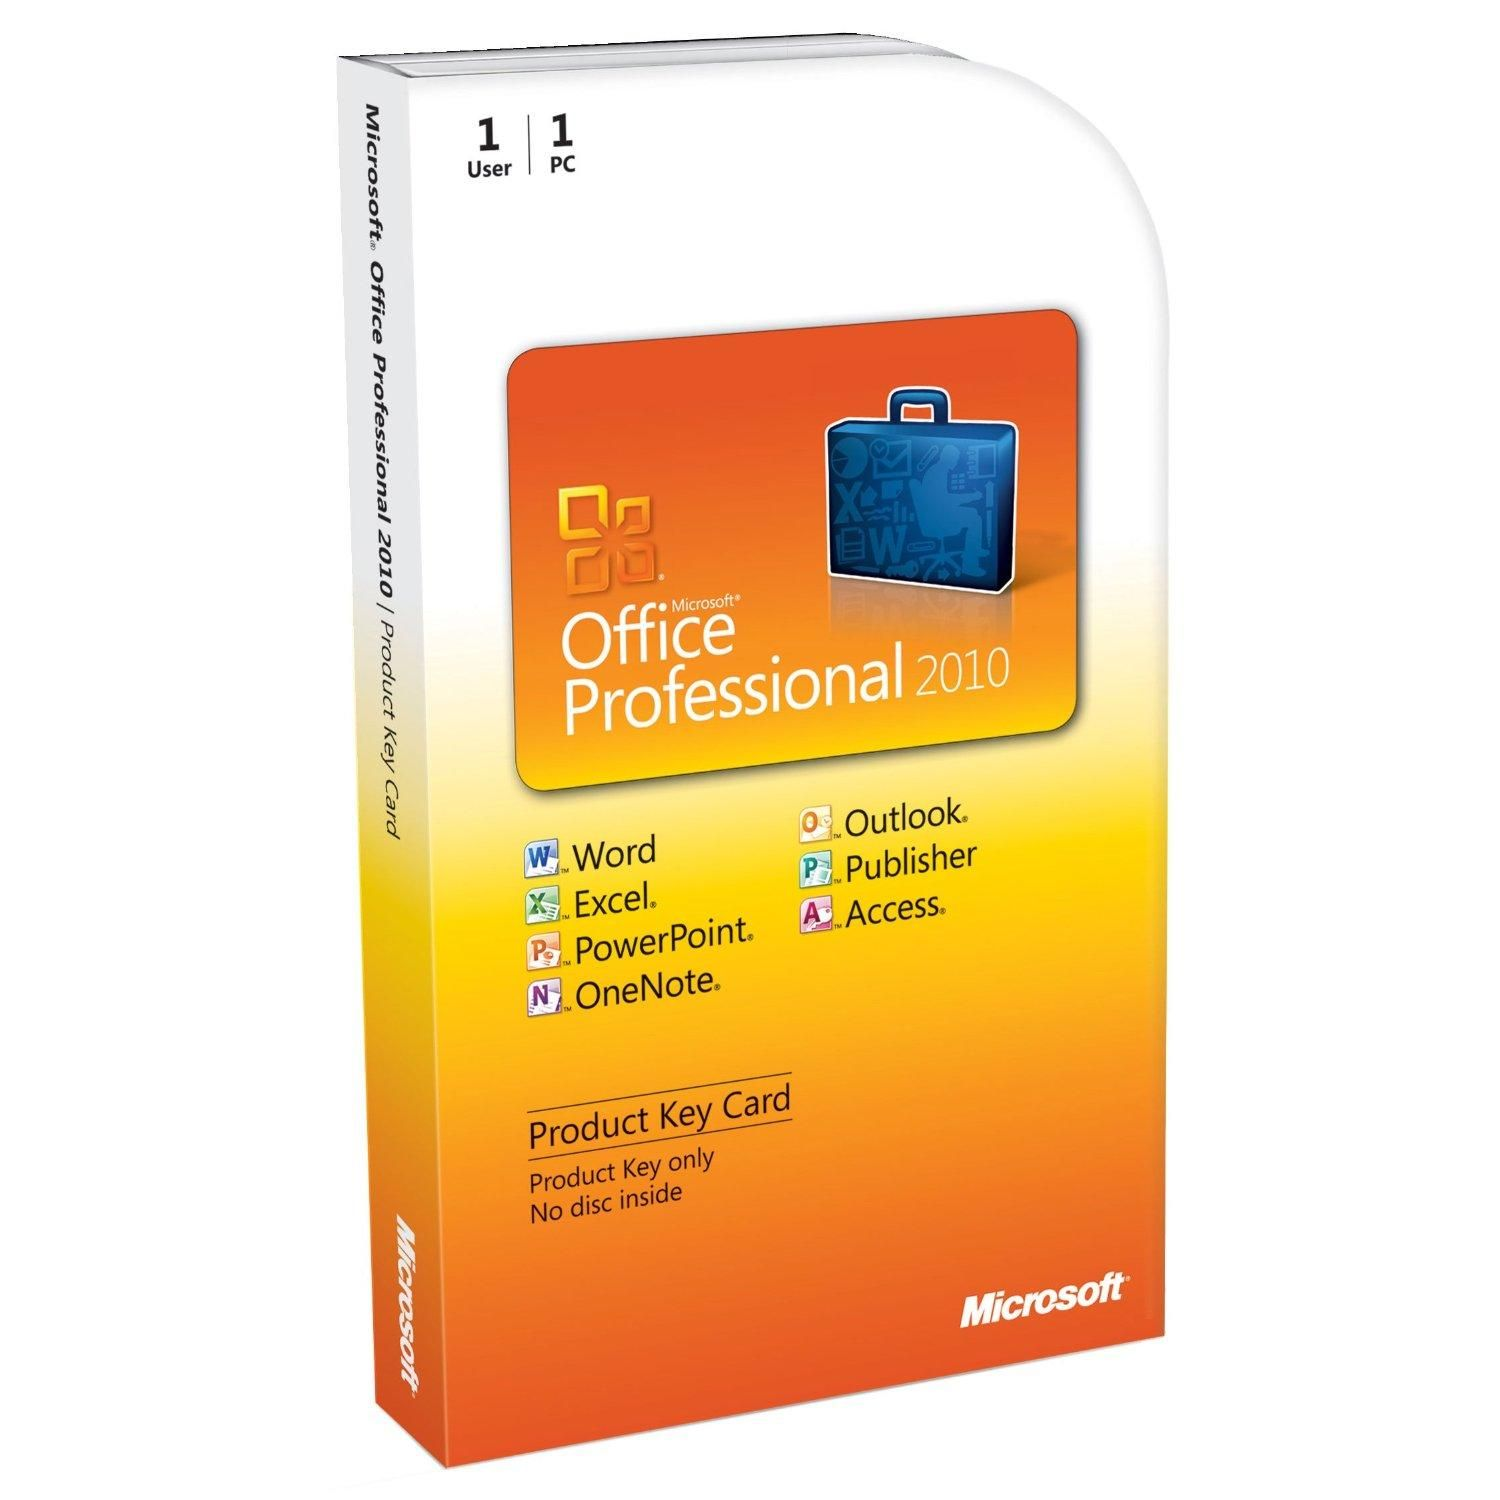 Office Professional 2010 PKC